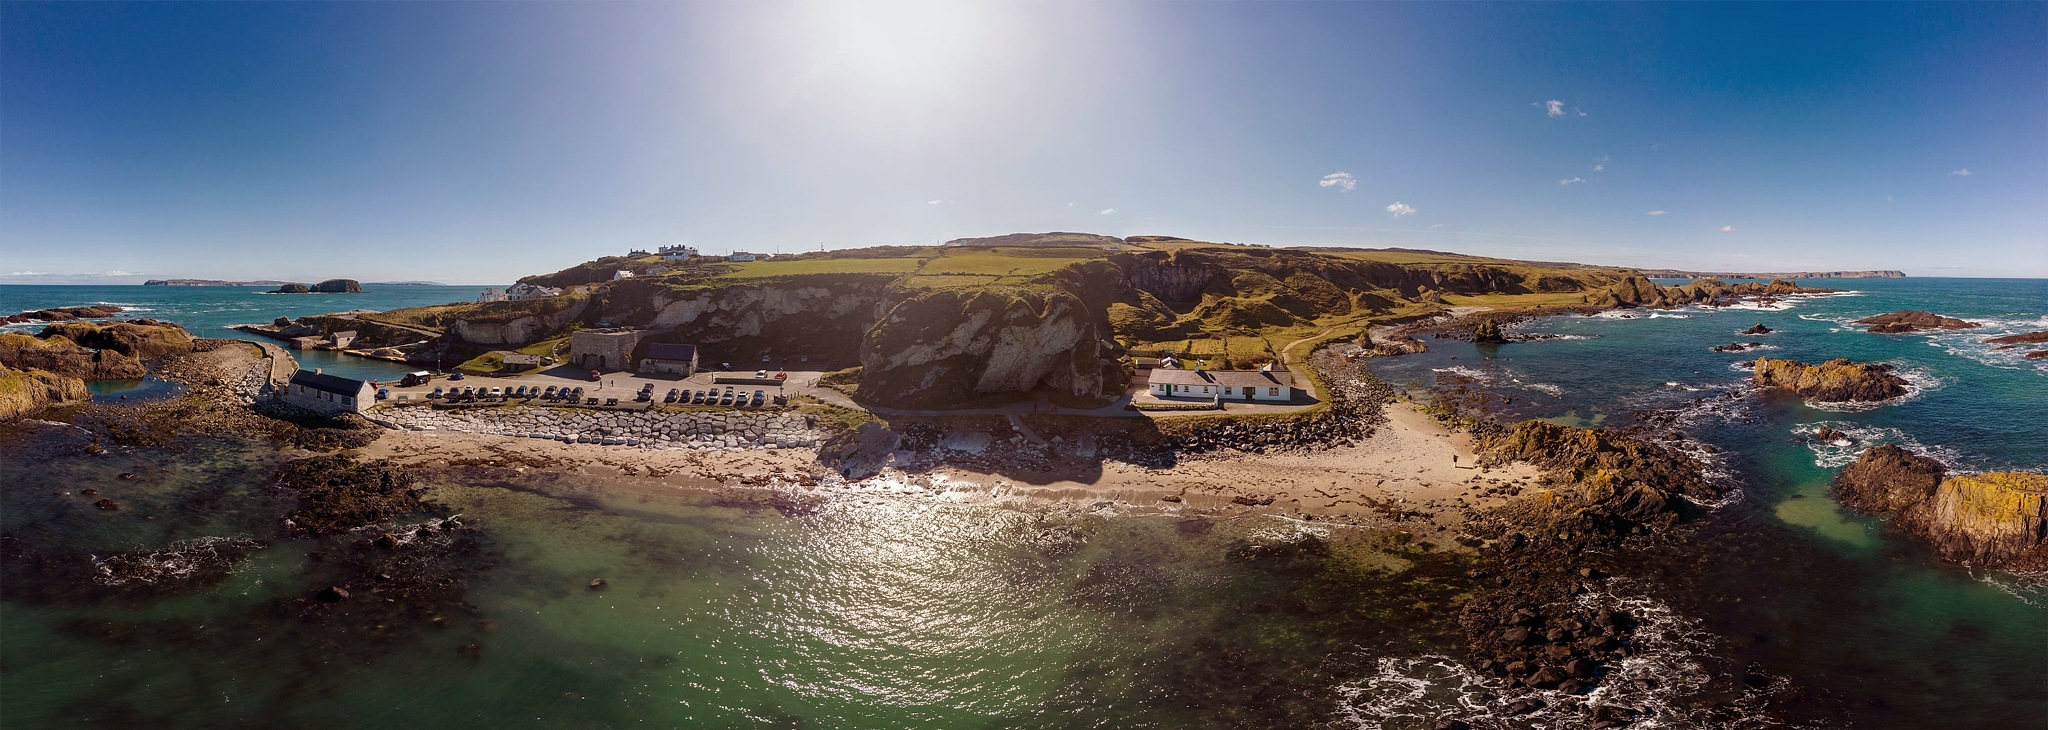 Ballintoy Harbour by Barry Hughes